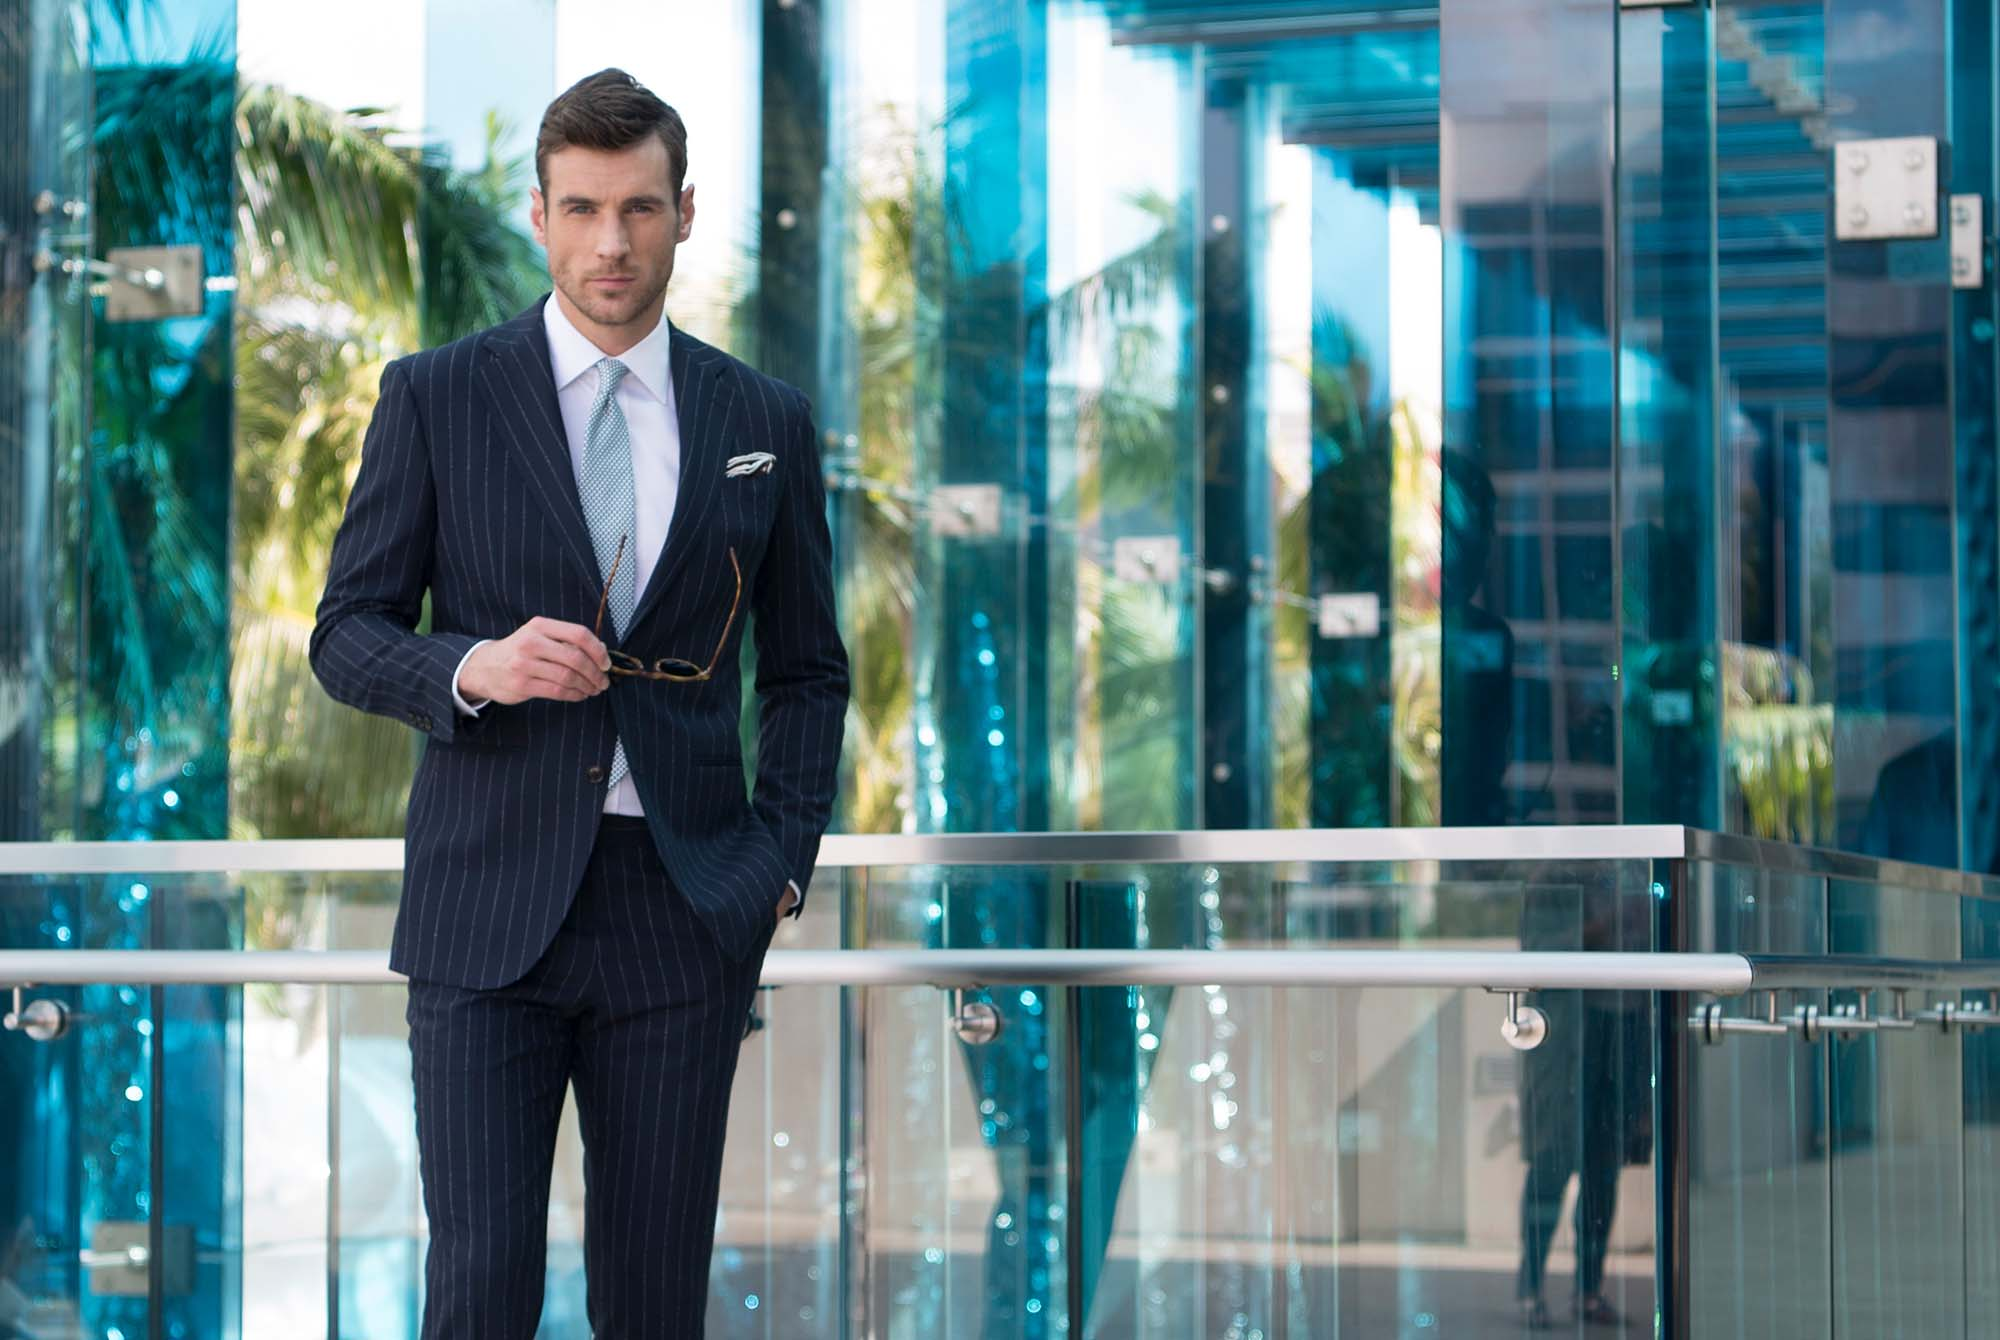 Knot Standard will change the way you think about suits